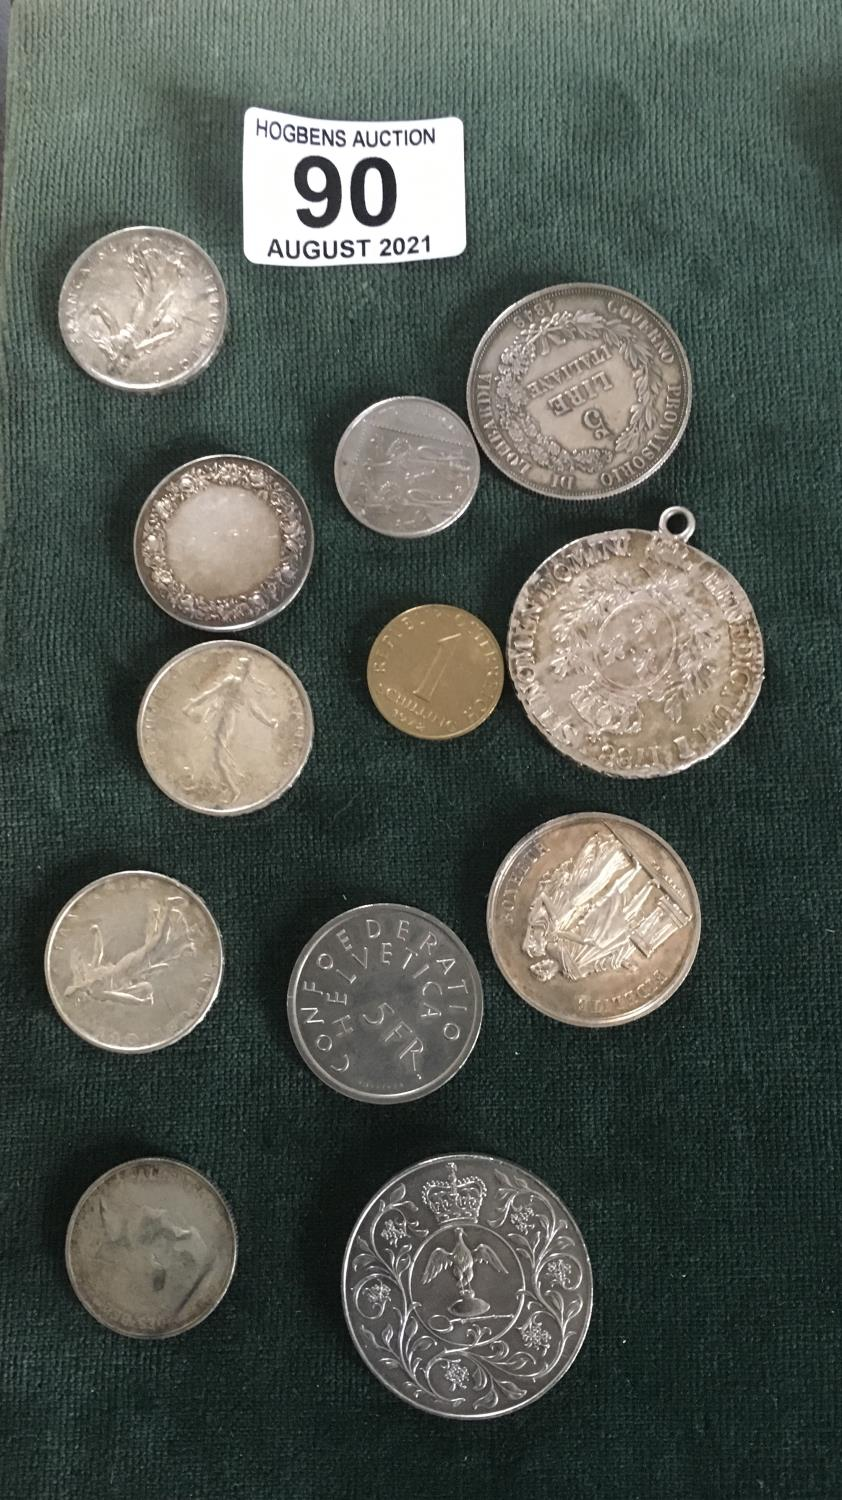 Collection of old French coins including some silver - Image 2 of 2